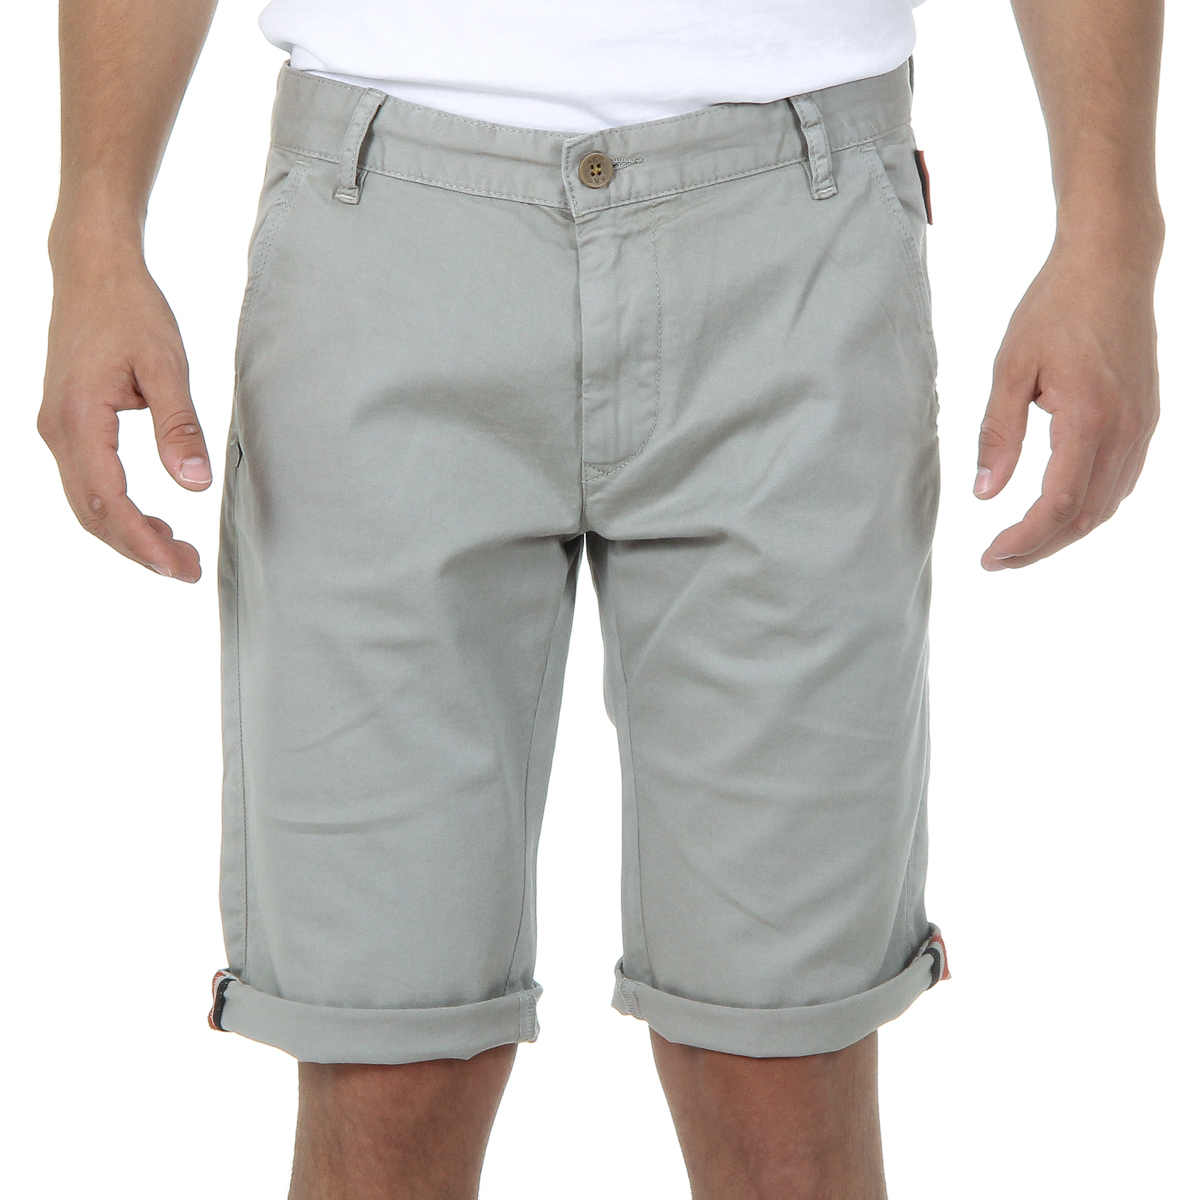 Primary image for Andrew Charles Mens Shorts Light Grey SADECK